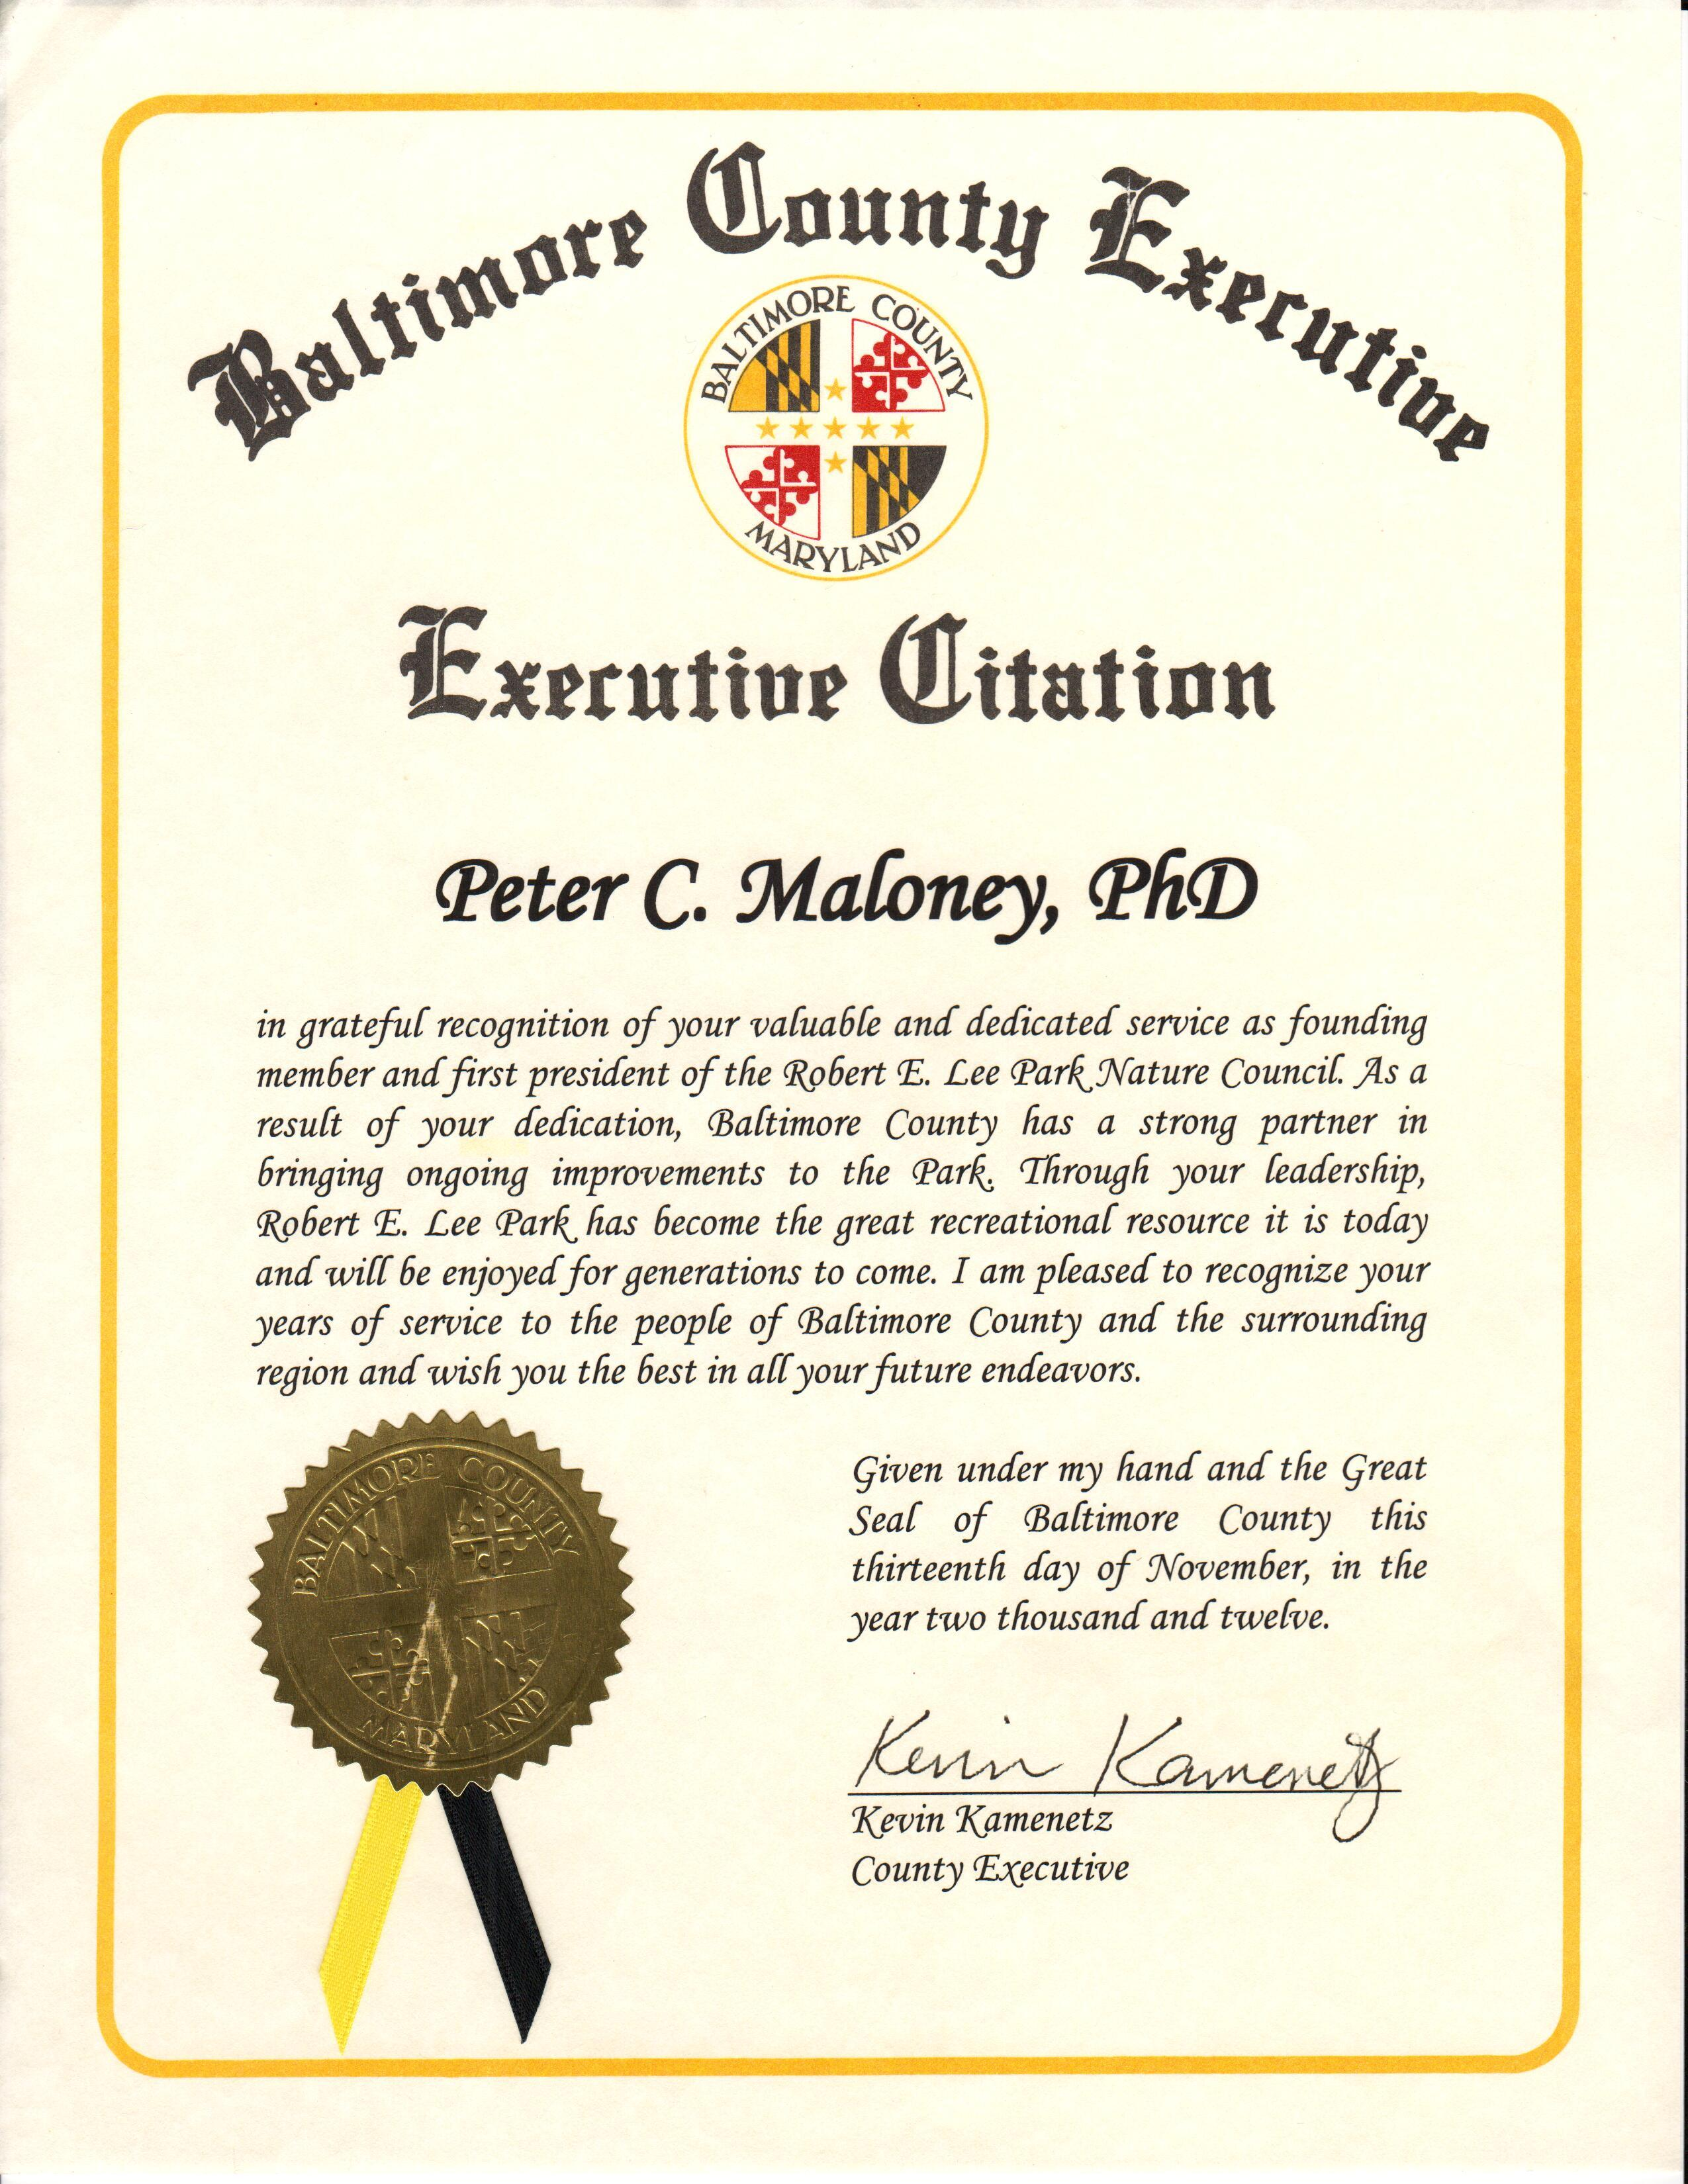 Founding member and president, Peter C. Maloney, PhD